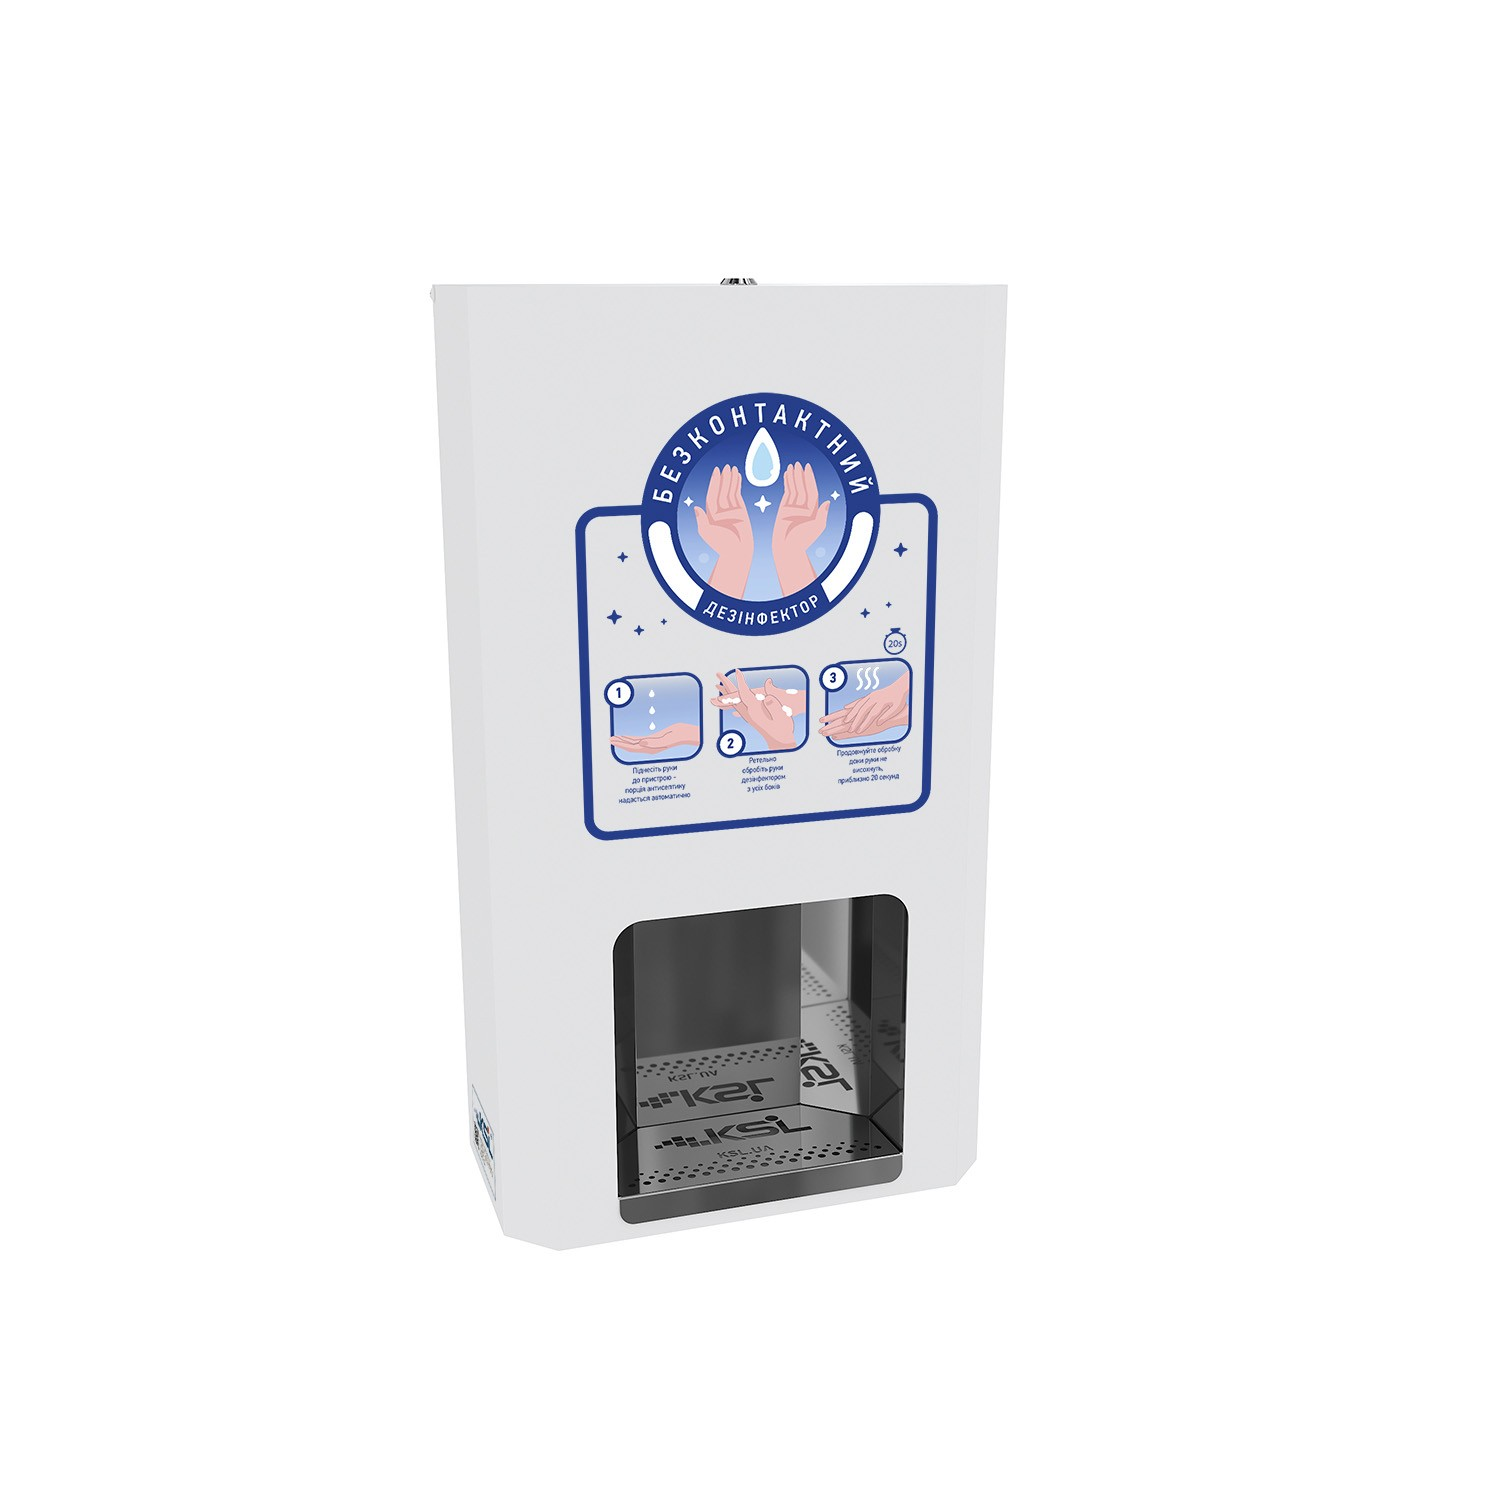 Hand hygiene station with touch-free automatic sanitizer dispenser (Копировать)